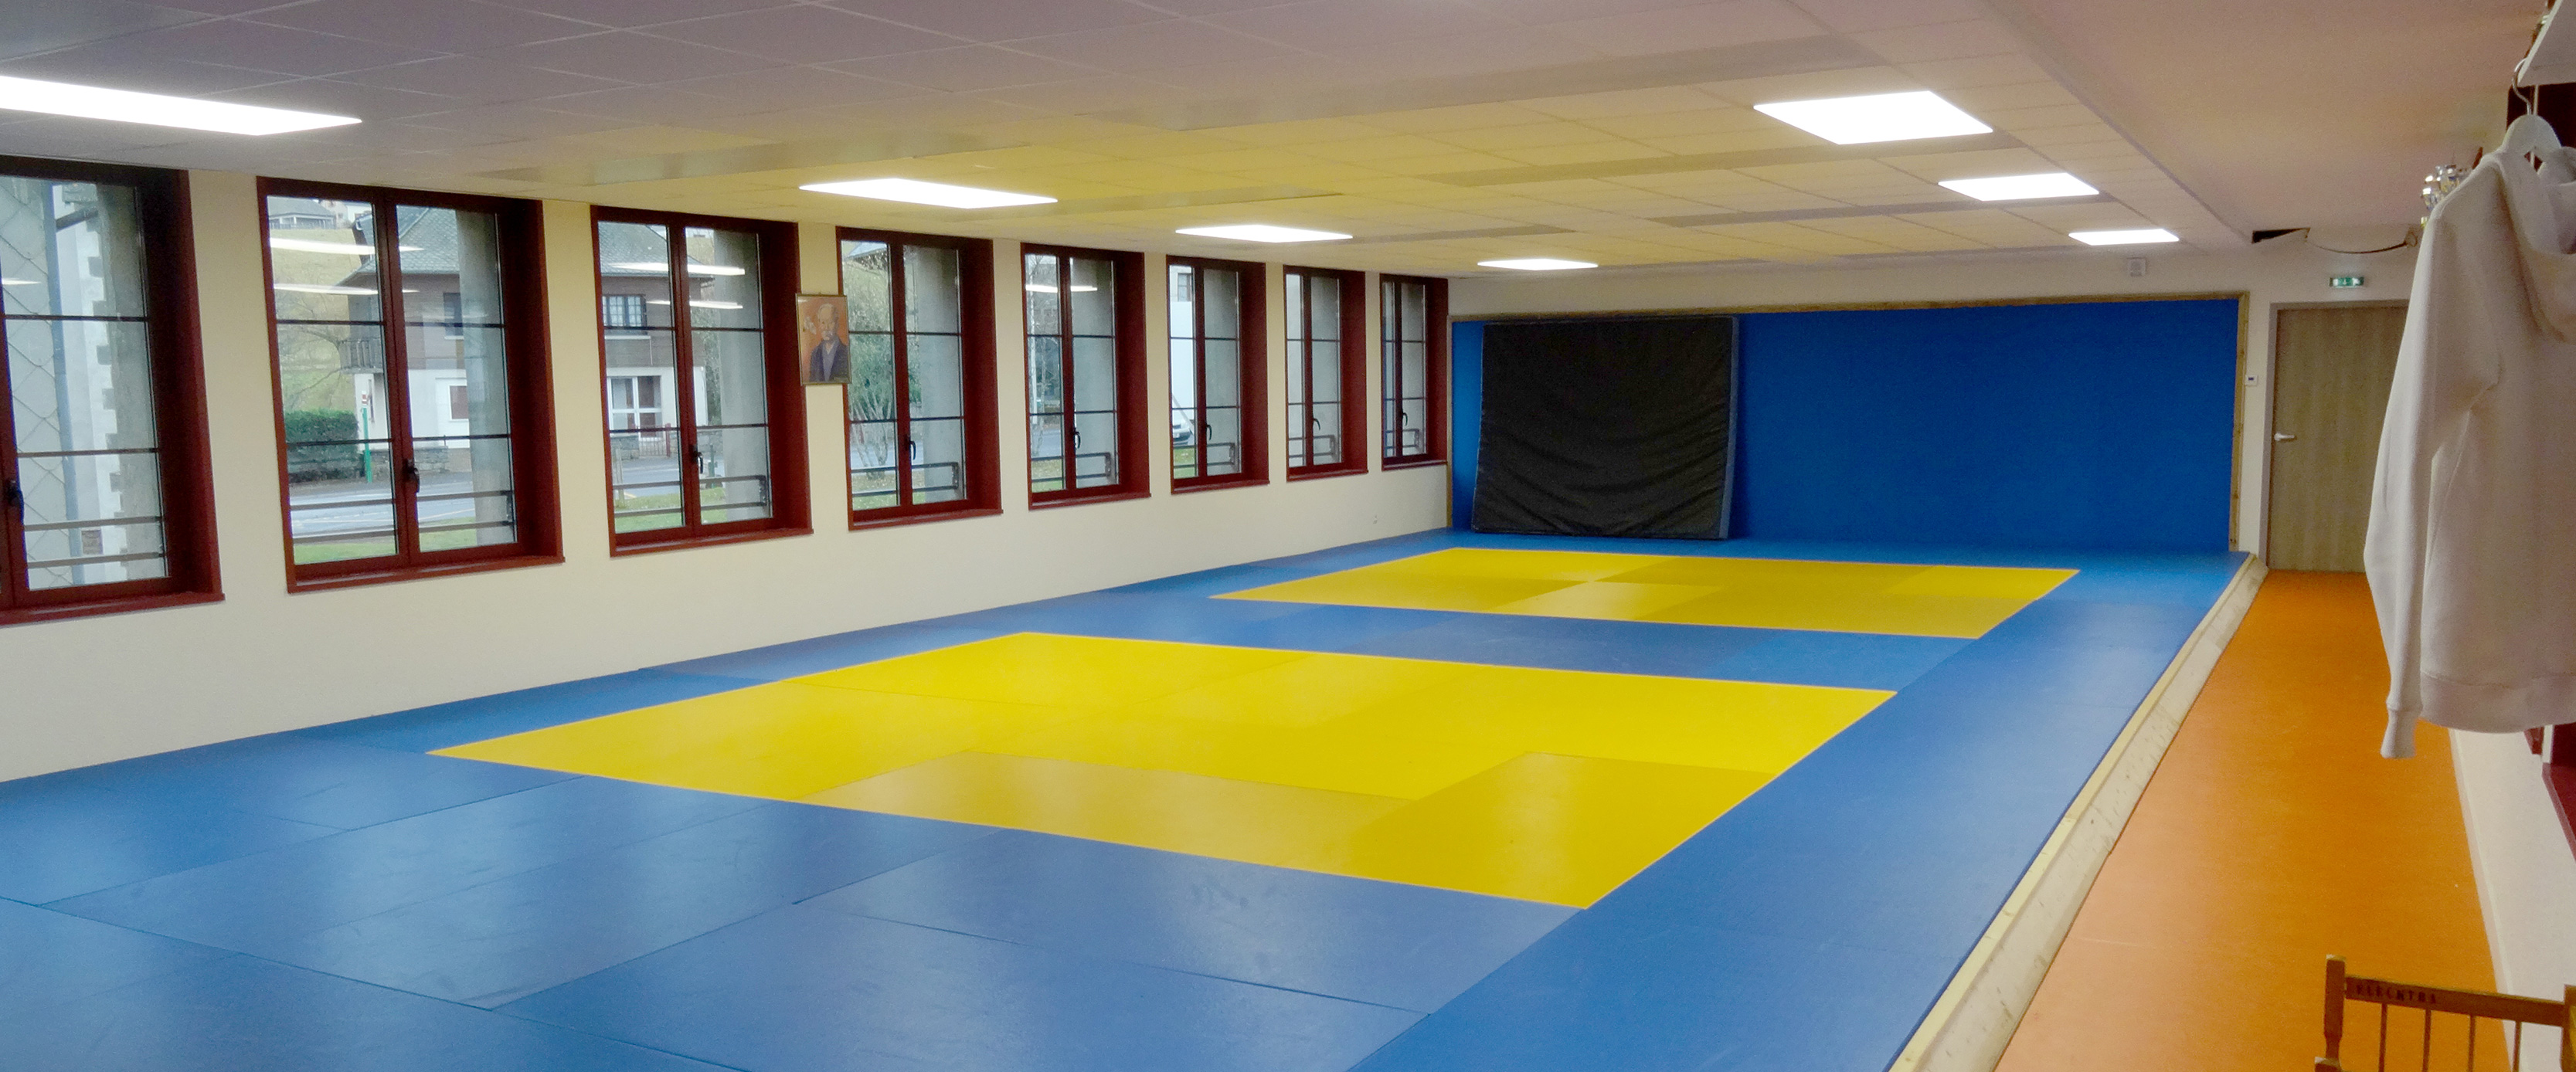 dojo-besse-equipements-sports.jpg